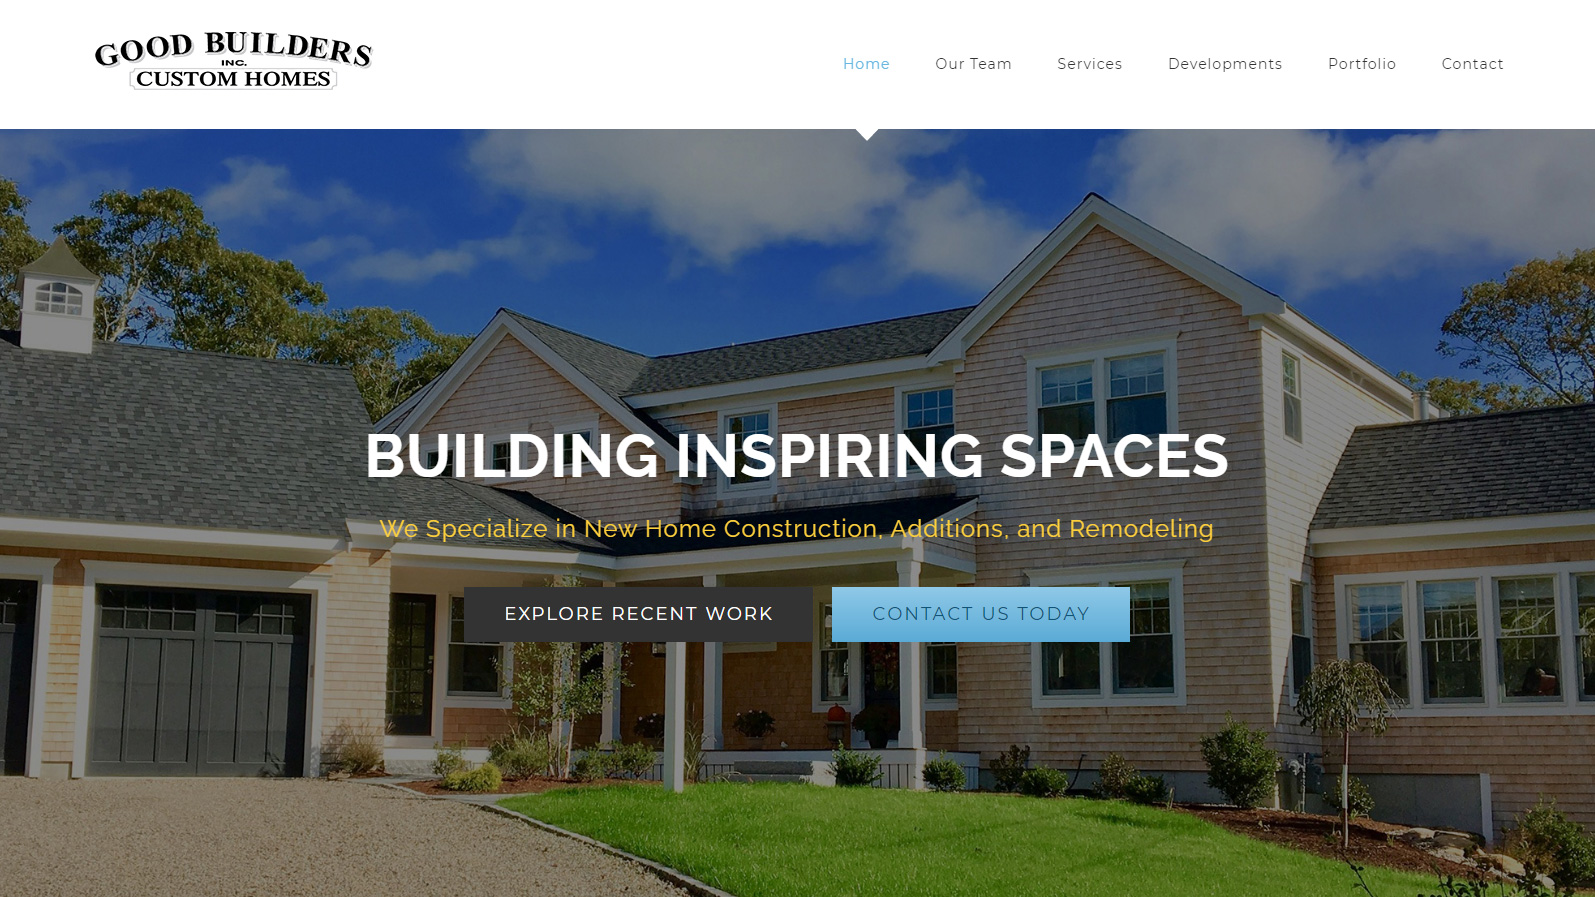 Portfolio Good Builders website design